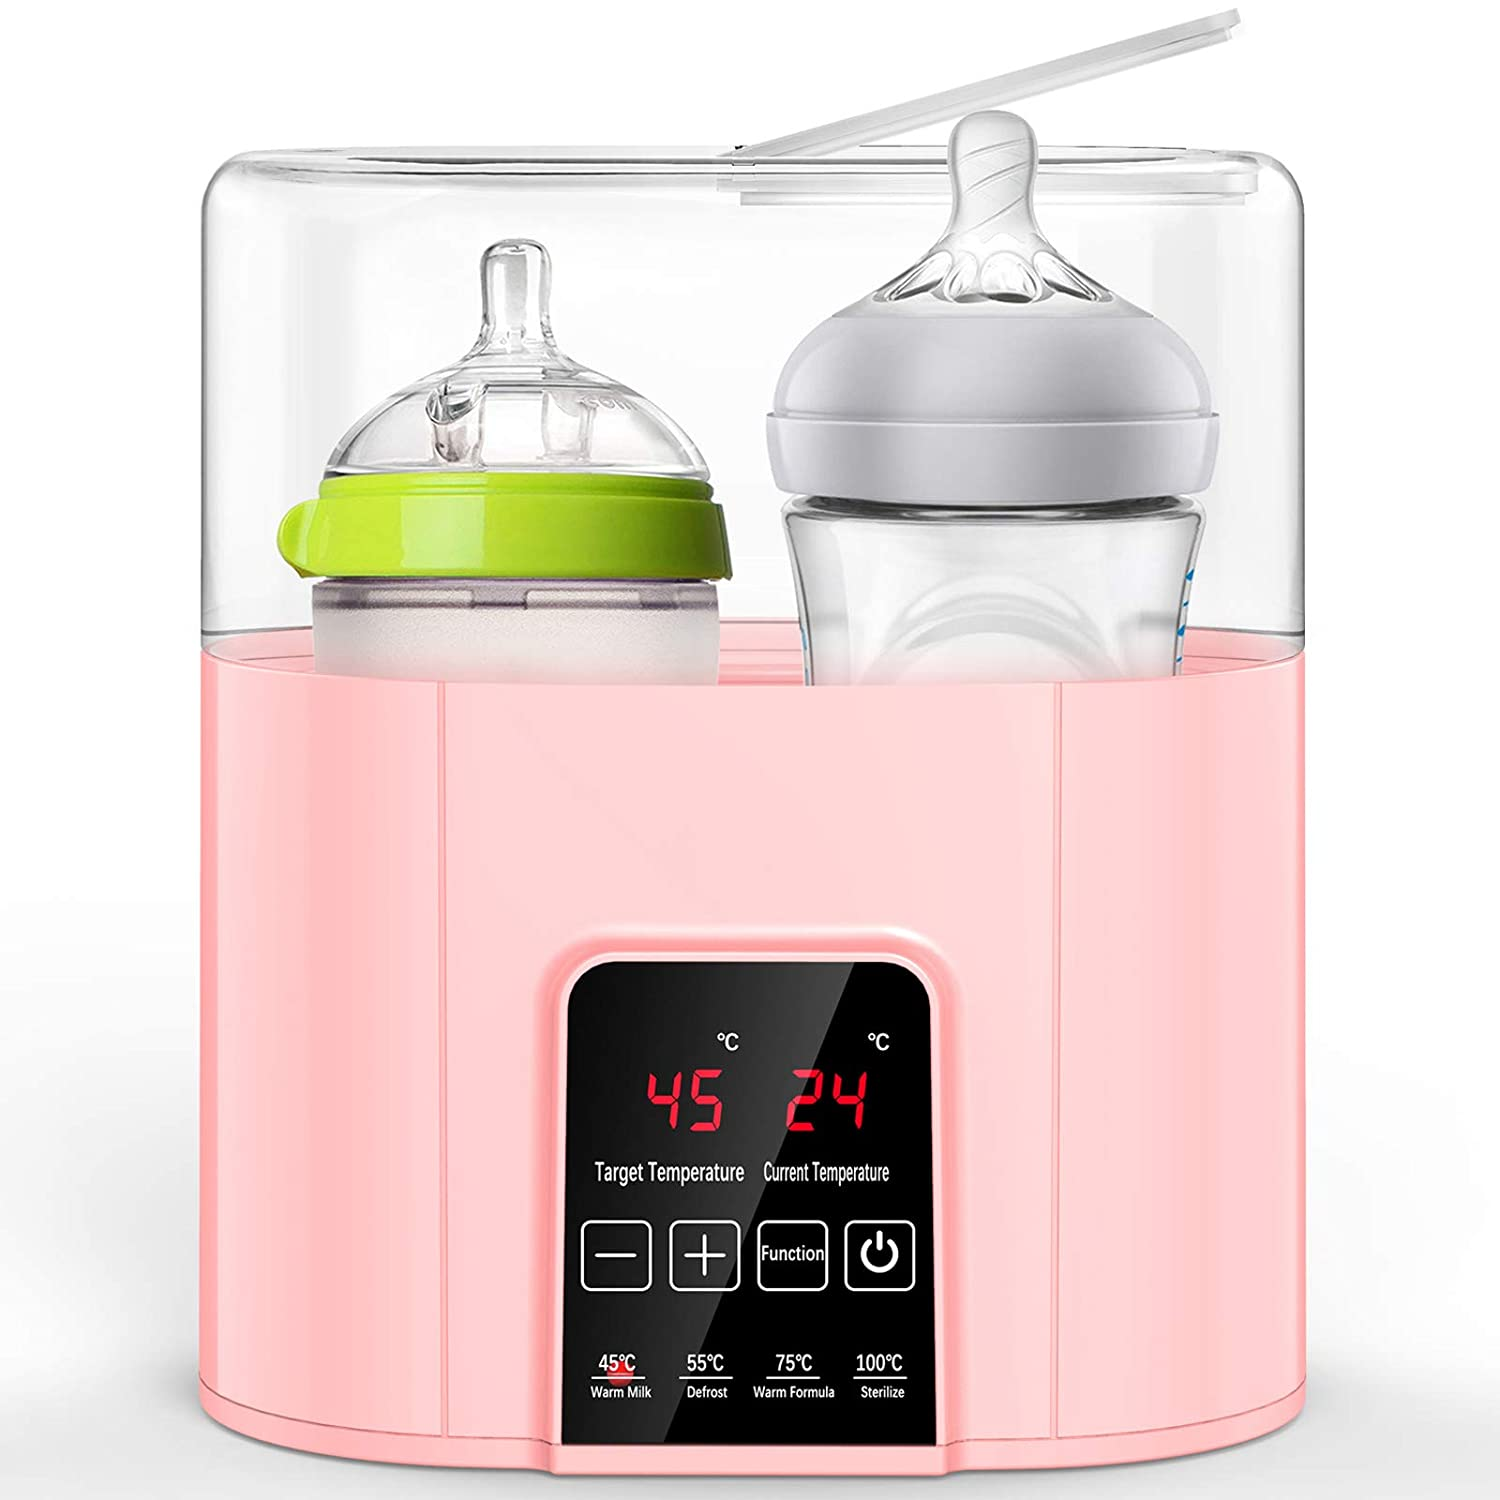 Double Baby Bottle Warmer & Sterilizer with Water Level Mark, Annsky 7-in-1 Fast Baby Breast Milk Warmer & Defrost and Food Formula Heater with LED Temperature Control,BPA-Free